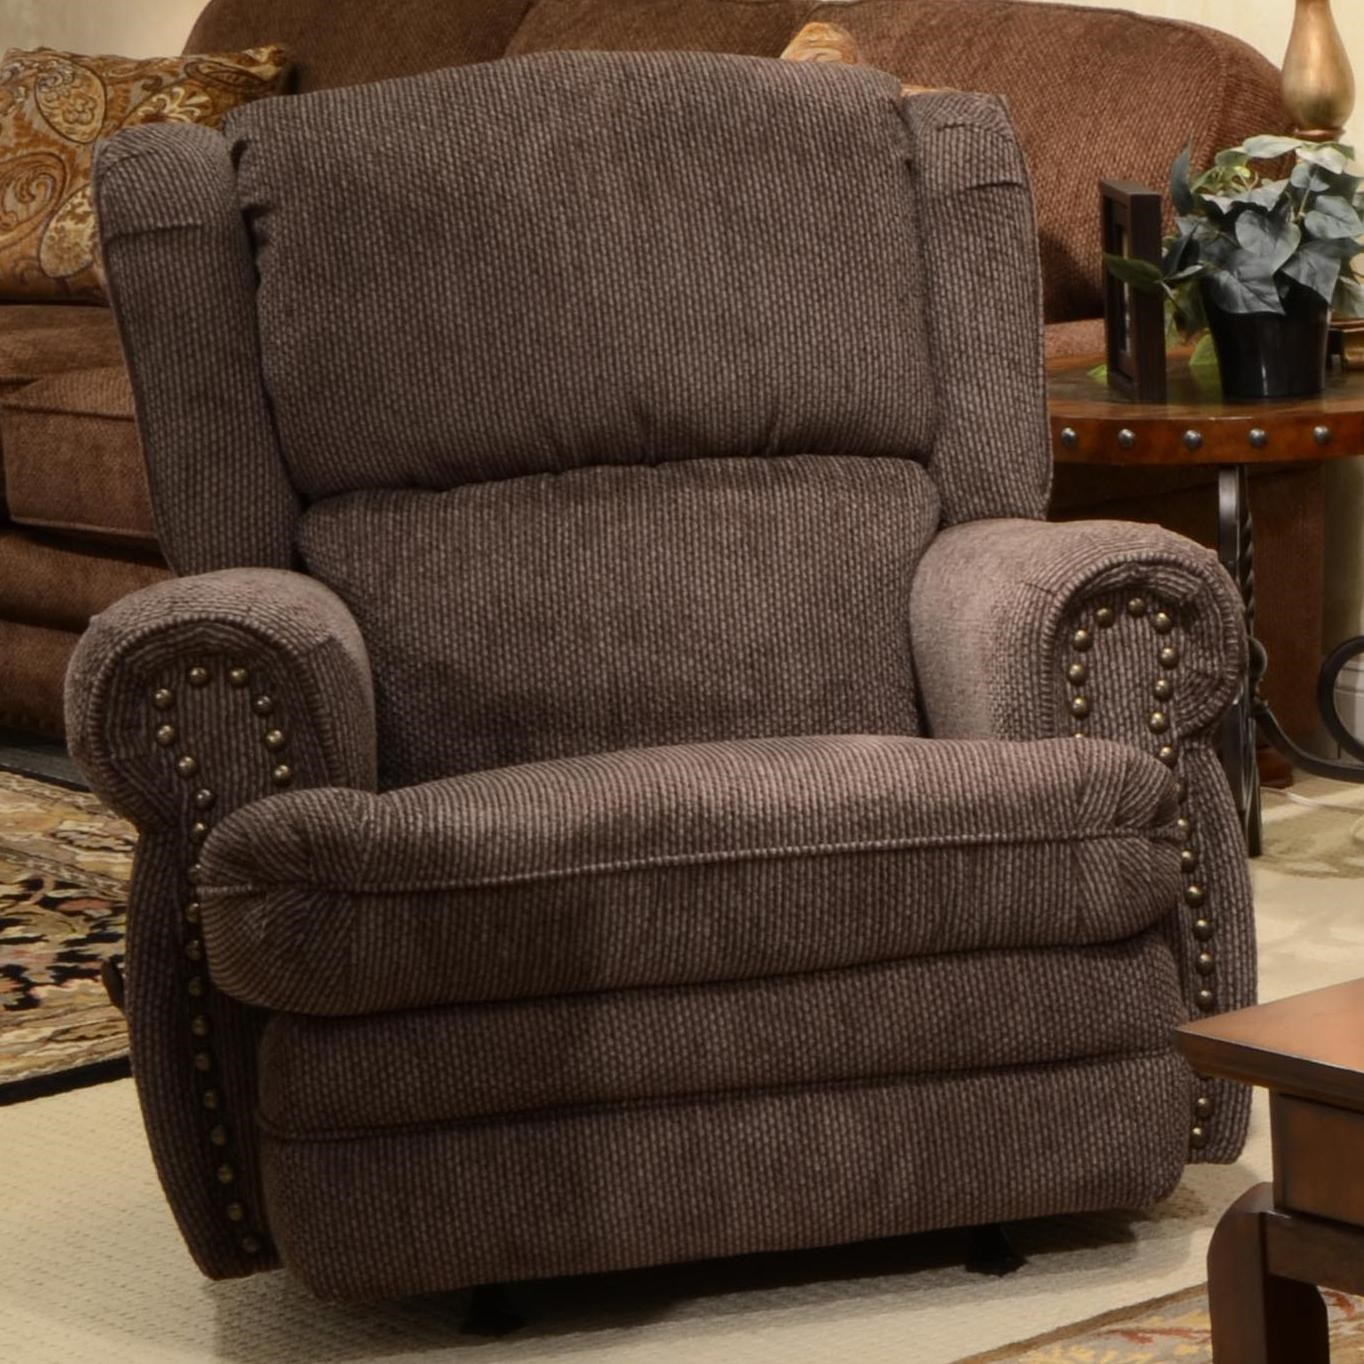 Jackson Furniture Braddock Rocker Recliner with Inidually Driven Nail Heads - Virginia Furniture Market - Three Way Recliners  sc 1 st  Virginia Furniture Market & Jackson Furniture Braddock Rocker Recliner with Inidually ... islam-shia.org